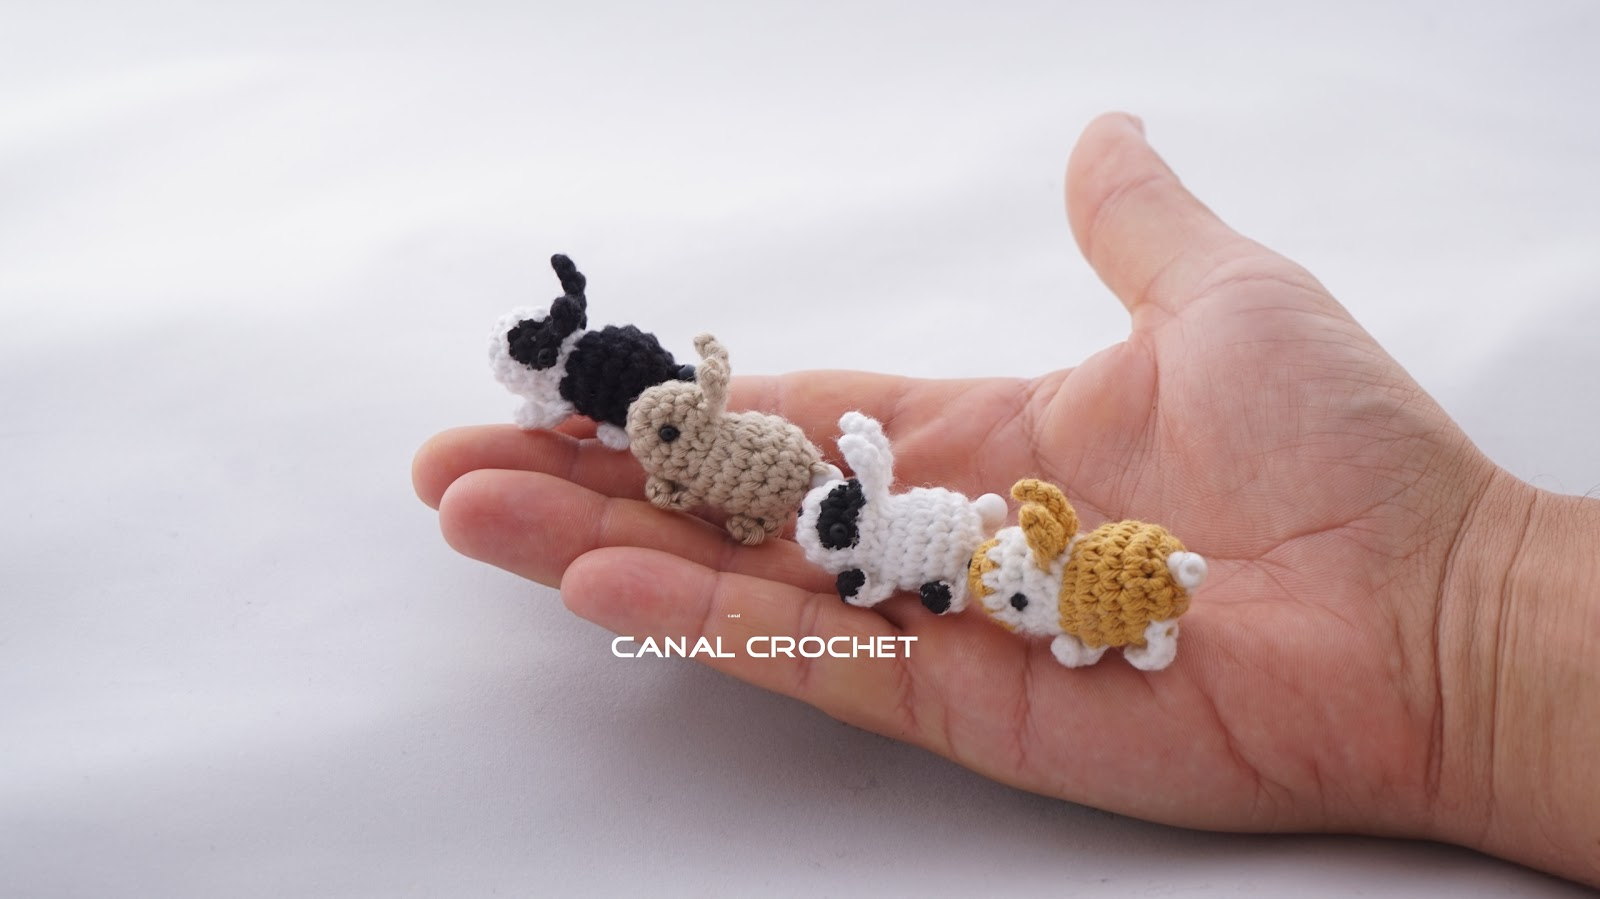 CANAL CROCHET: Mini conejitos amigurumis tutorial